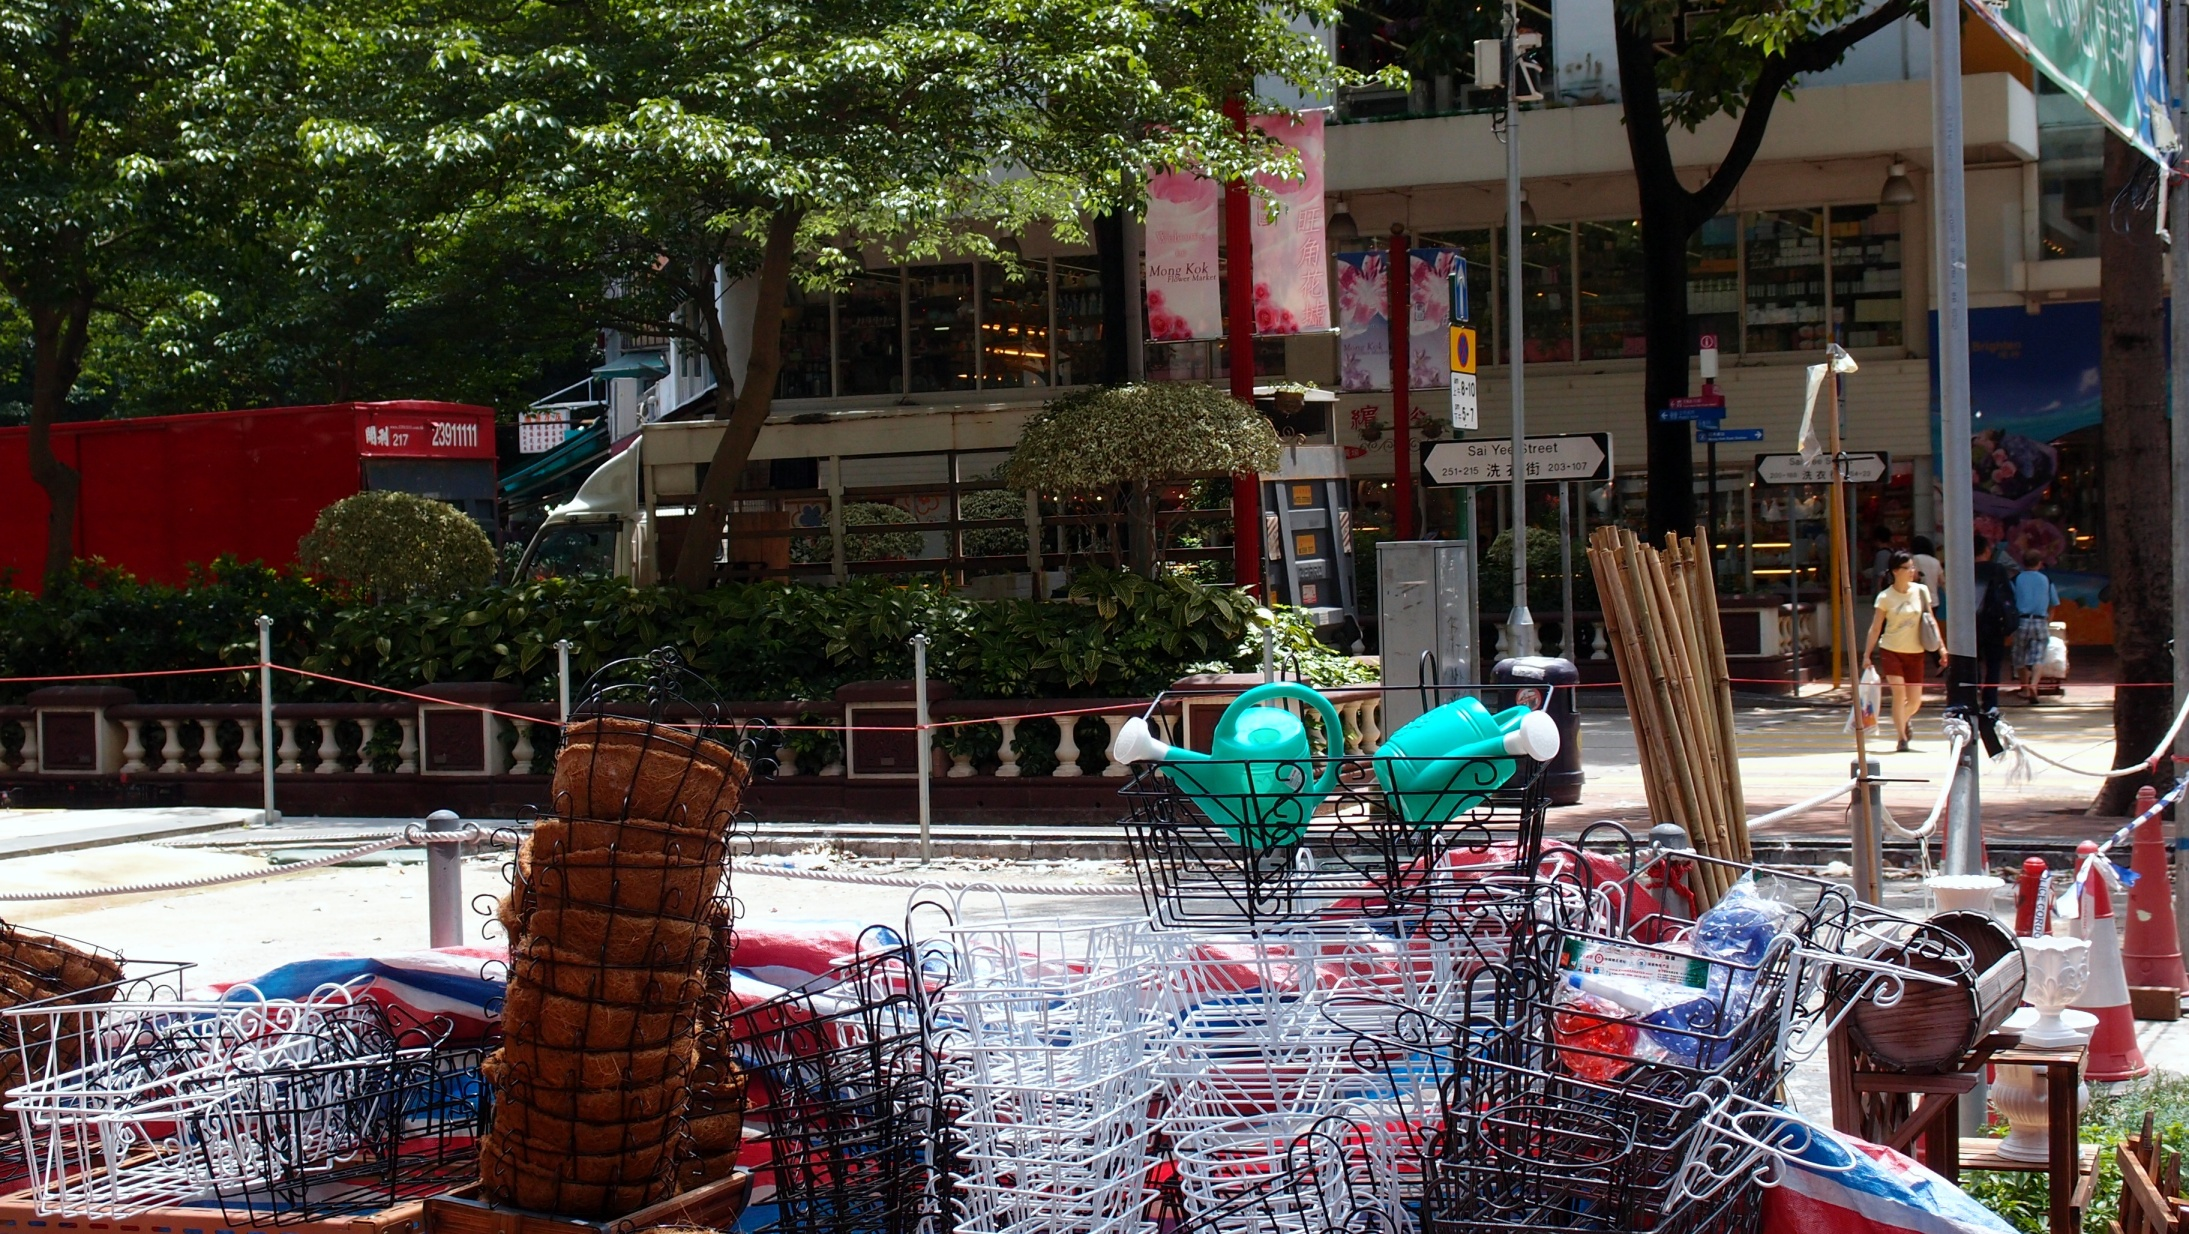 It's about 10 minutes walk from Prince Edward MTR Station